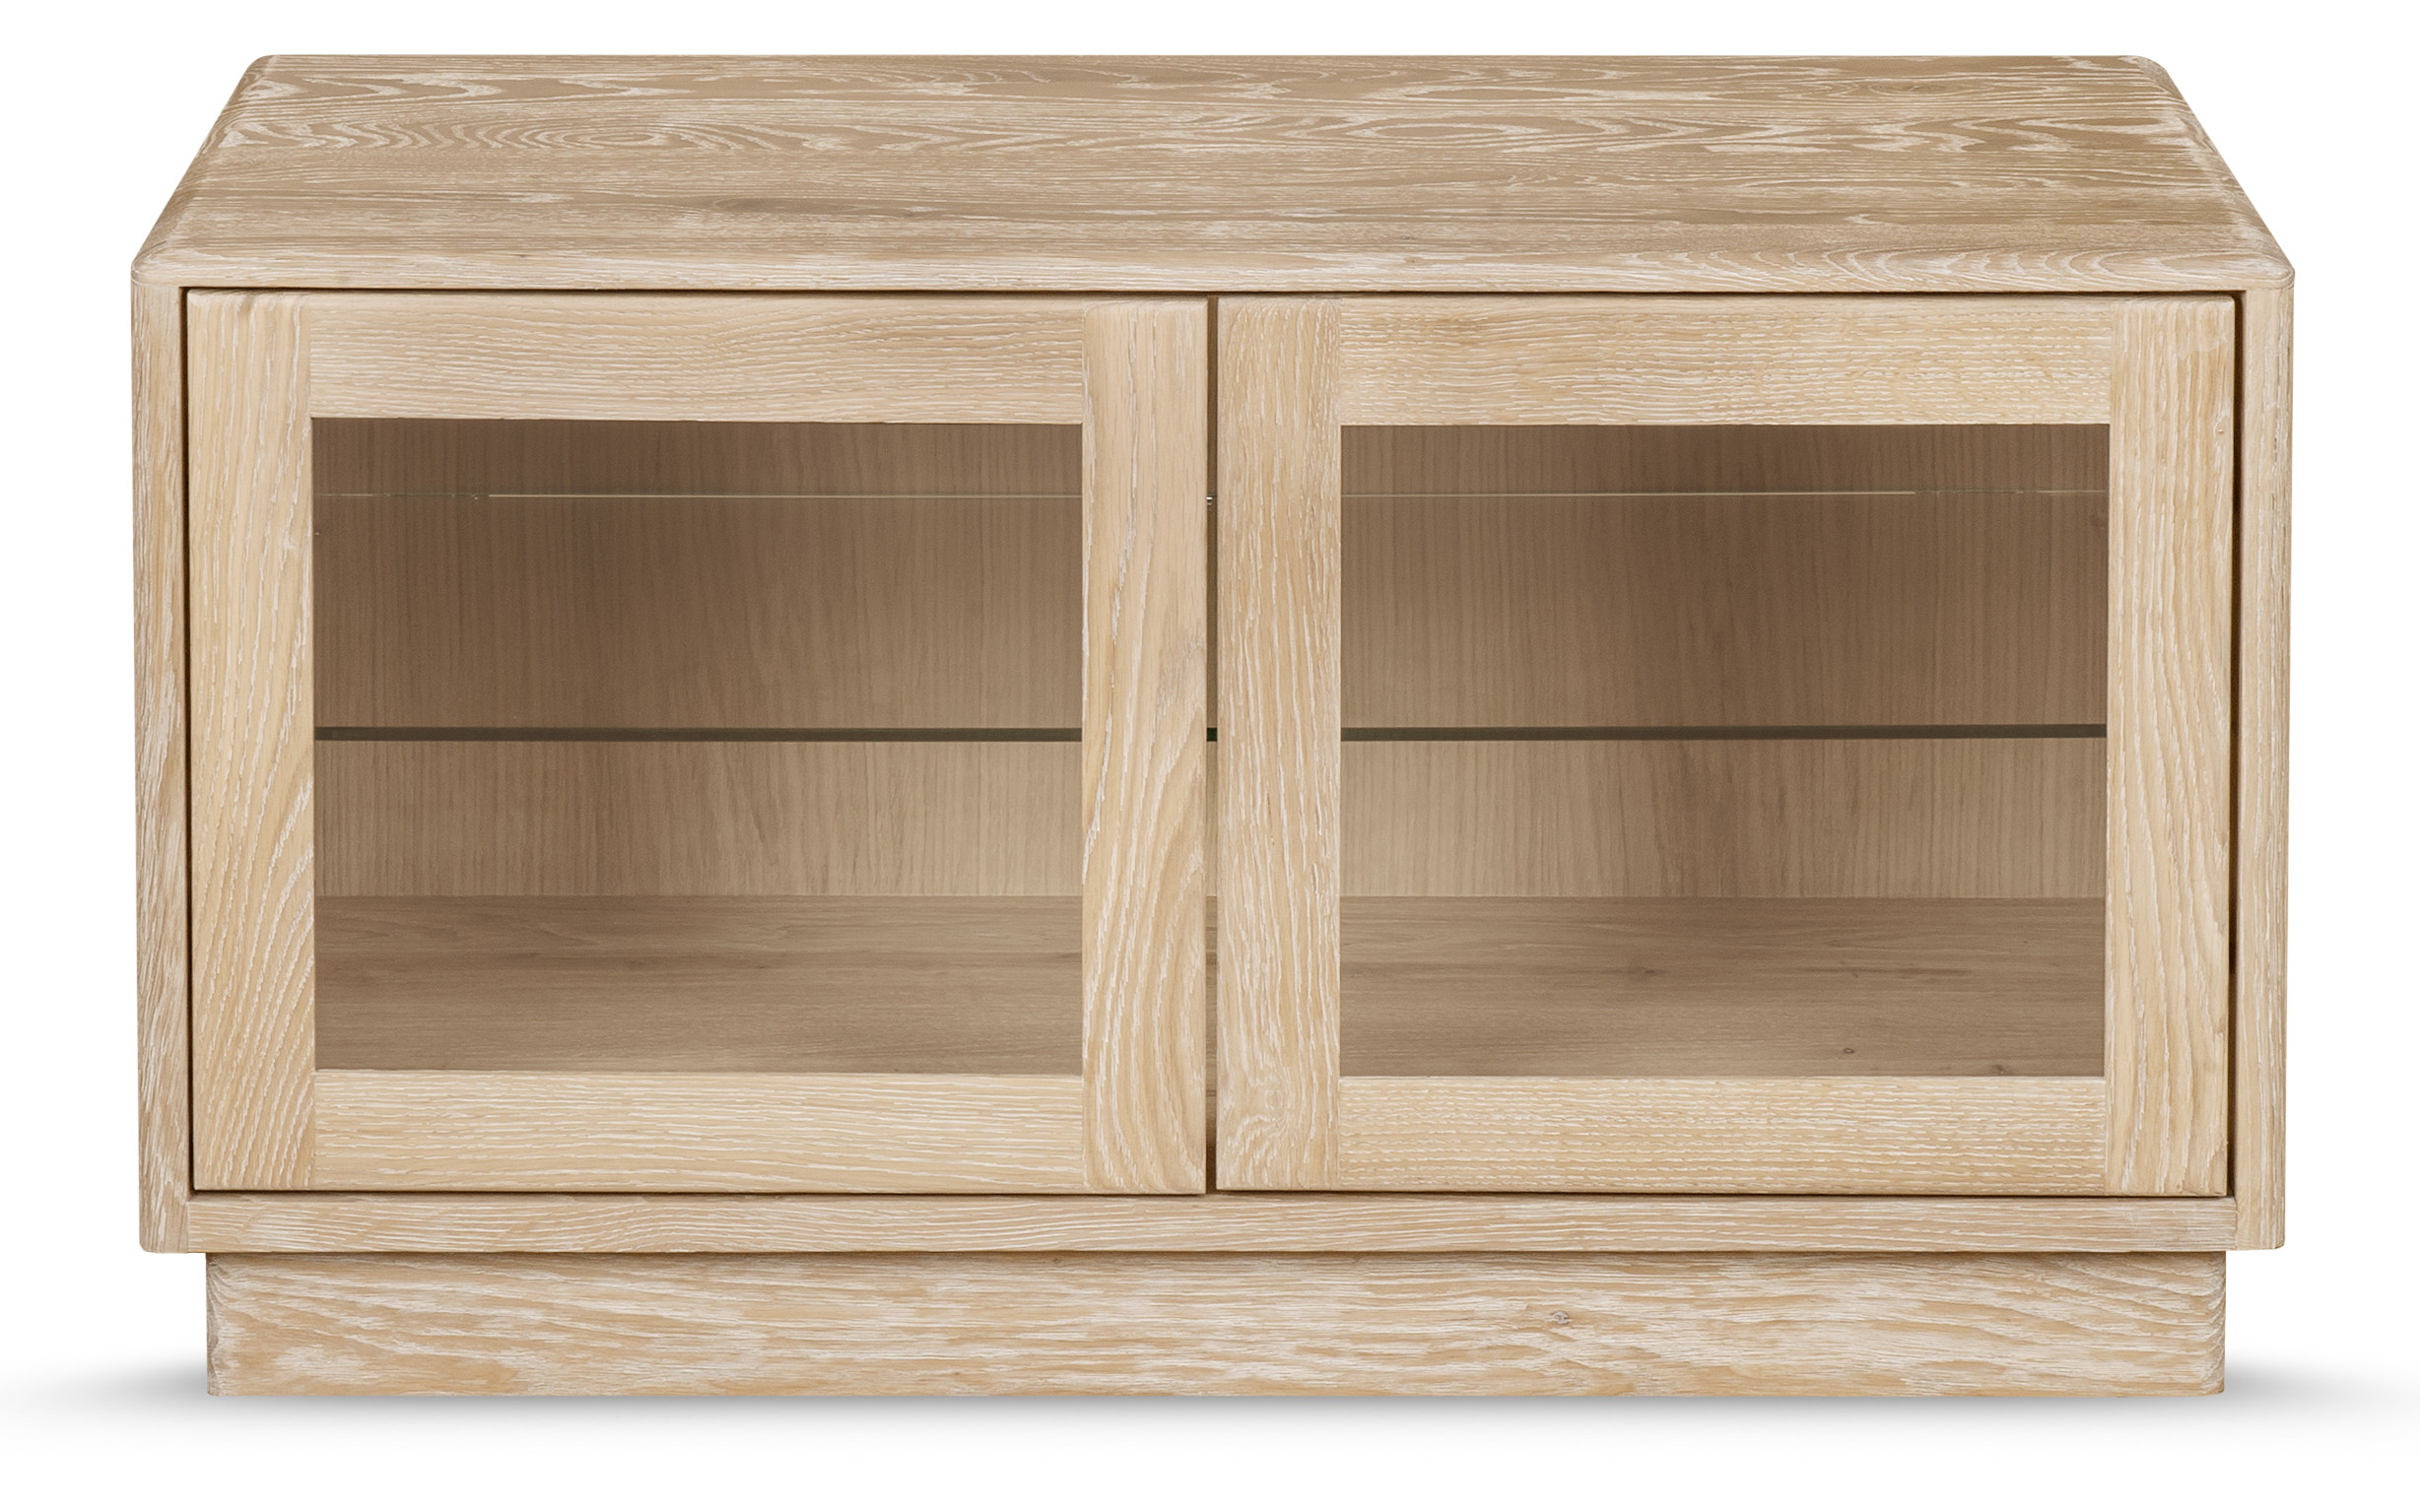 Oak Tv Stands With Glass Doors For Most Up To Date Portofino Tv Unit With Glass Doors (Gallery 3 of 20)